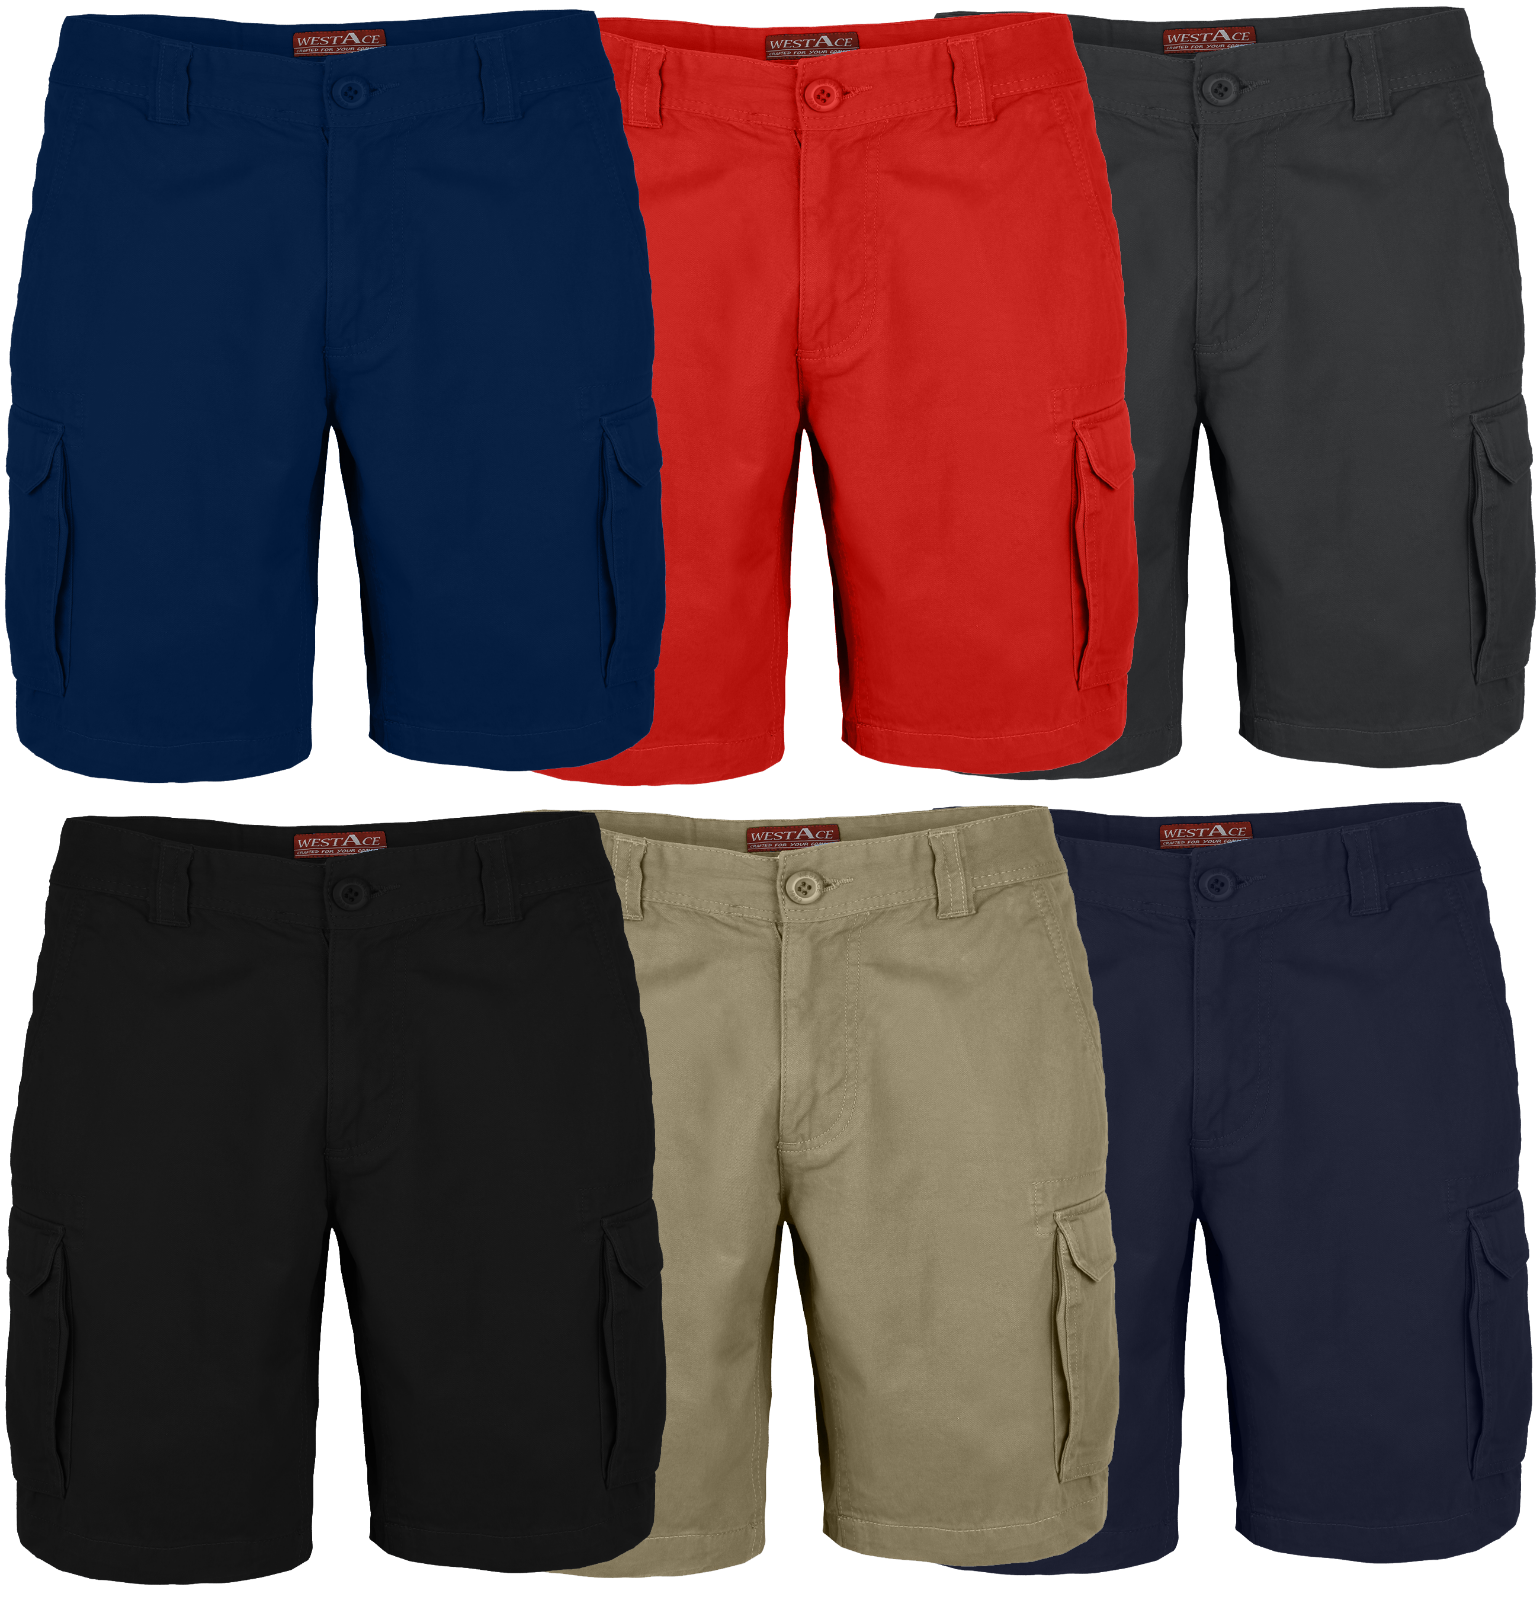 Men's Cargo Shorts 6 Pocket Combat Flat Front Chino Half Pants Waist Size 32-44 Clothing, Shoes & Accessories